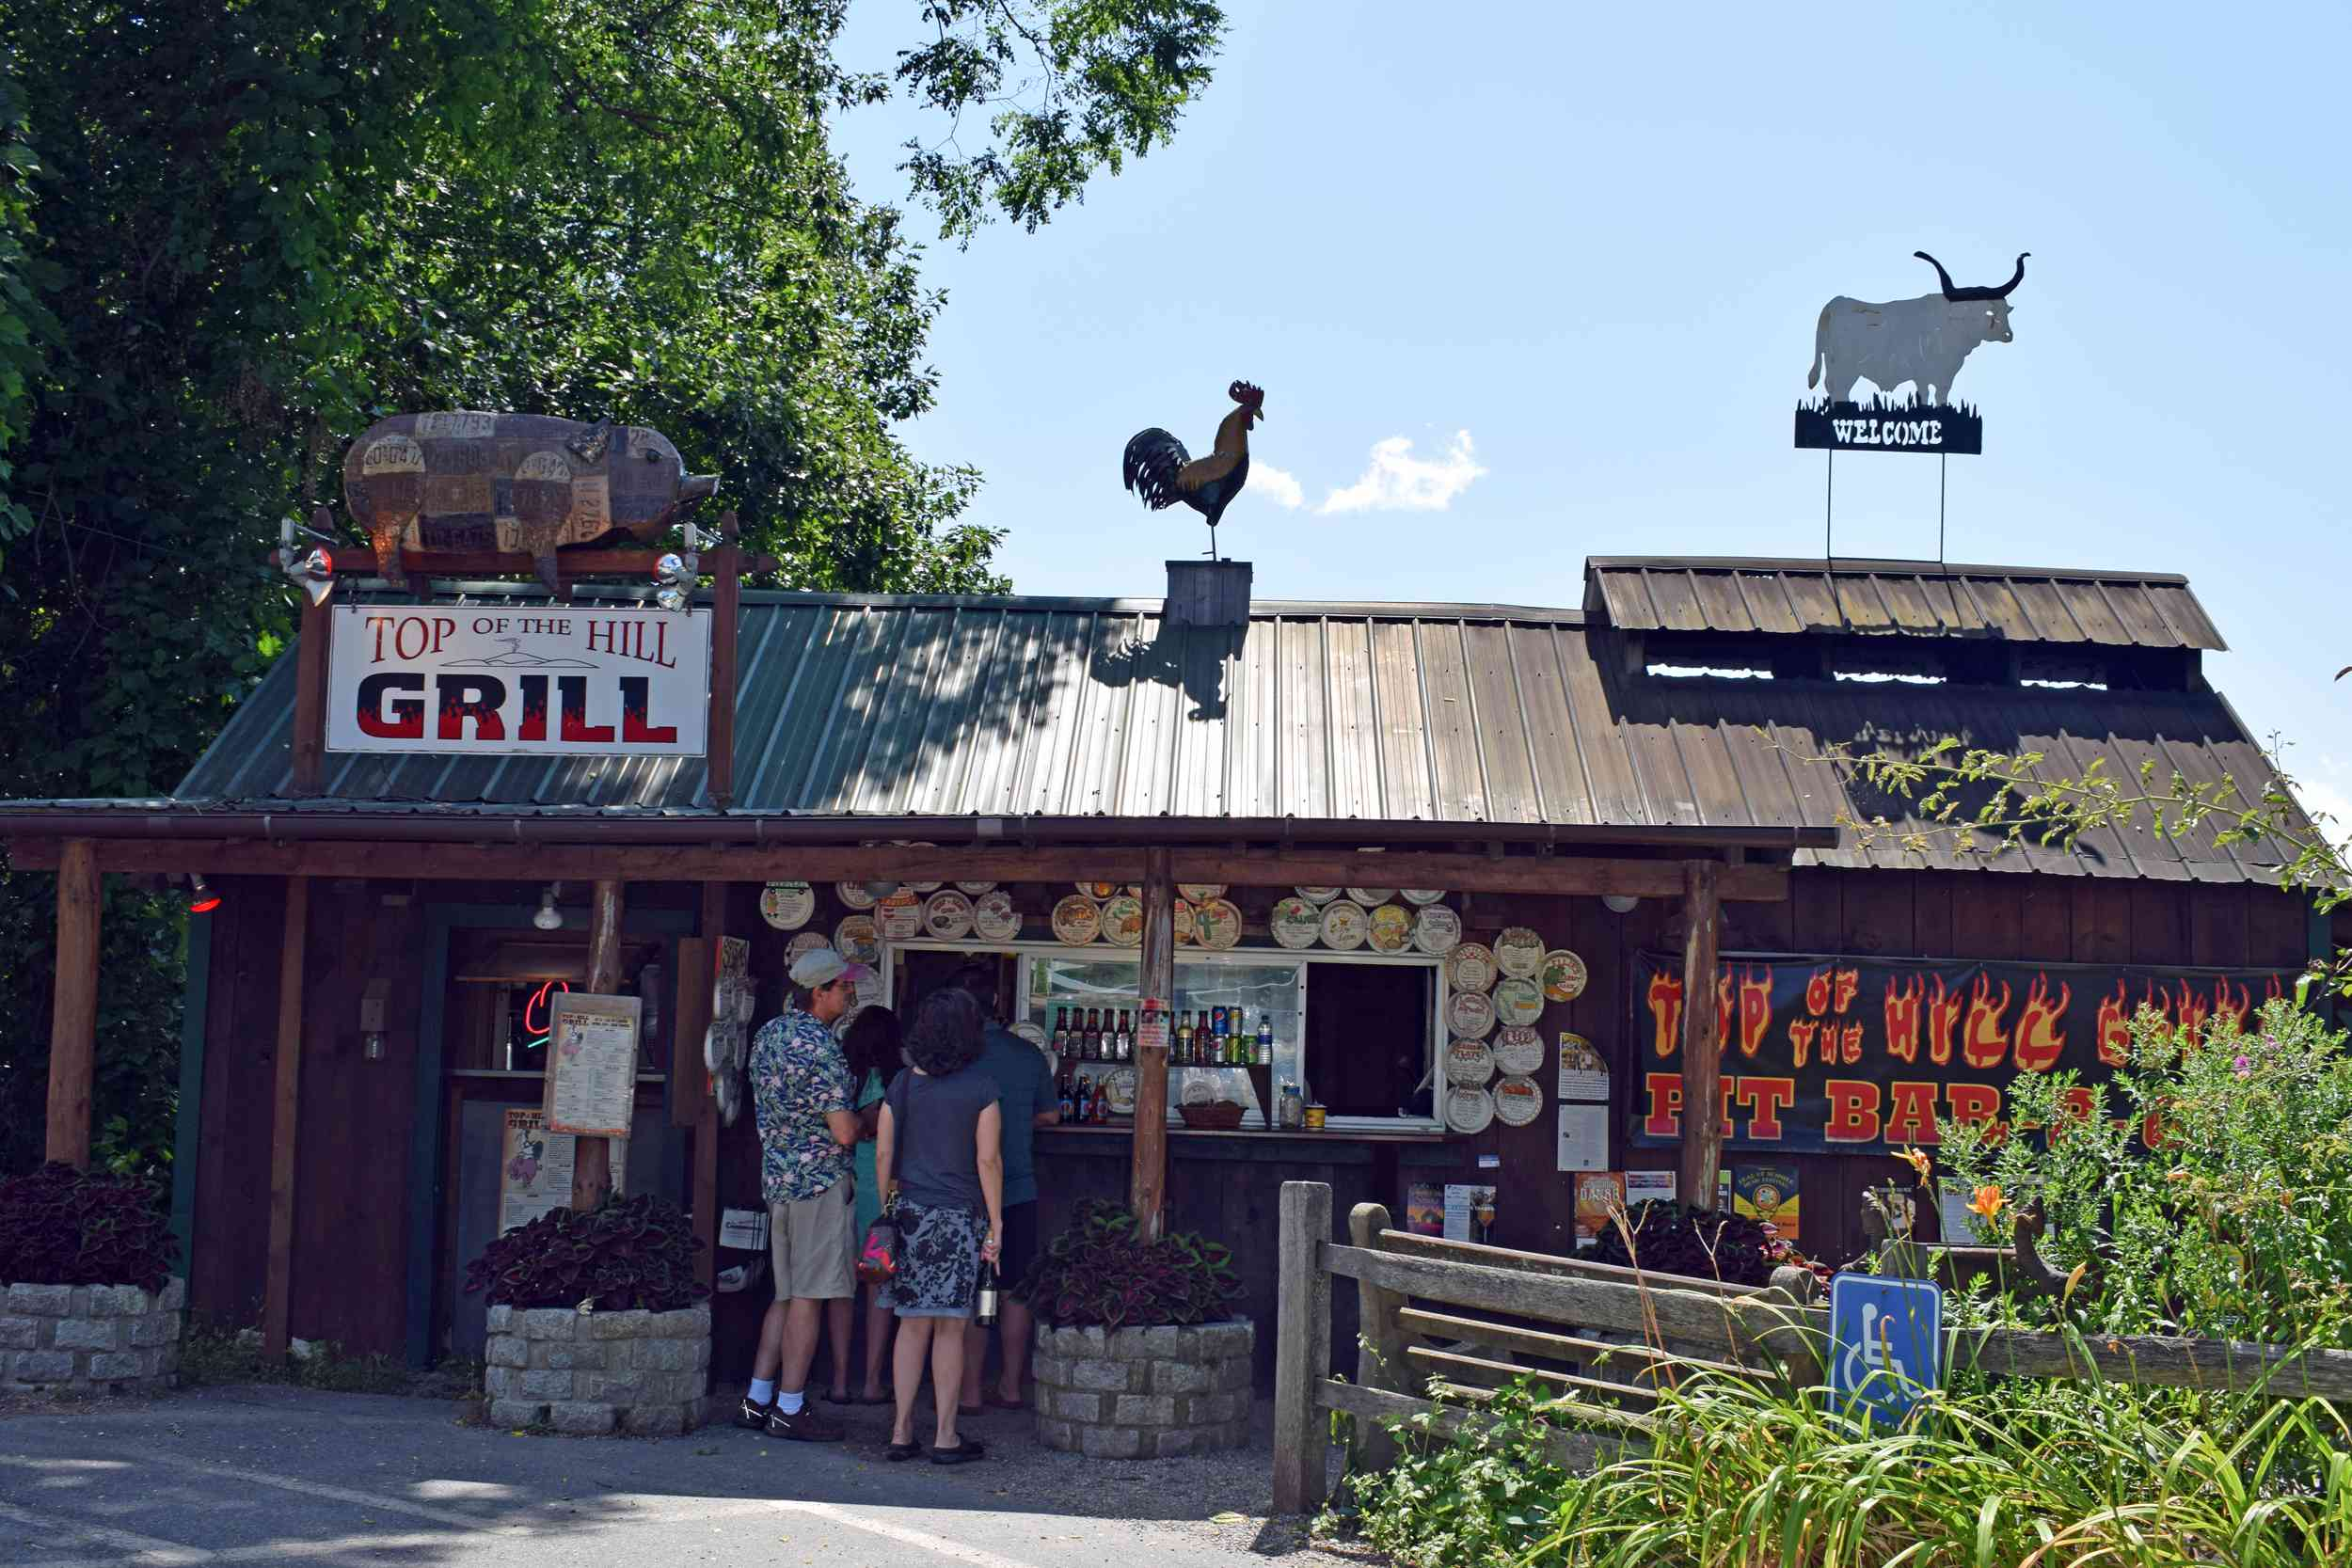 Top of the Hill Grill Brattleboro BBQ